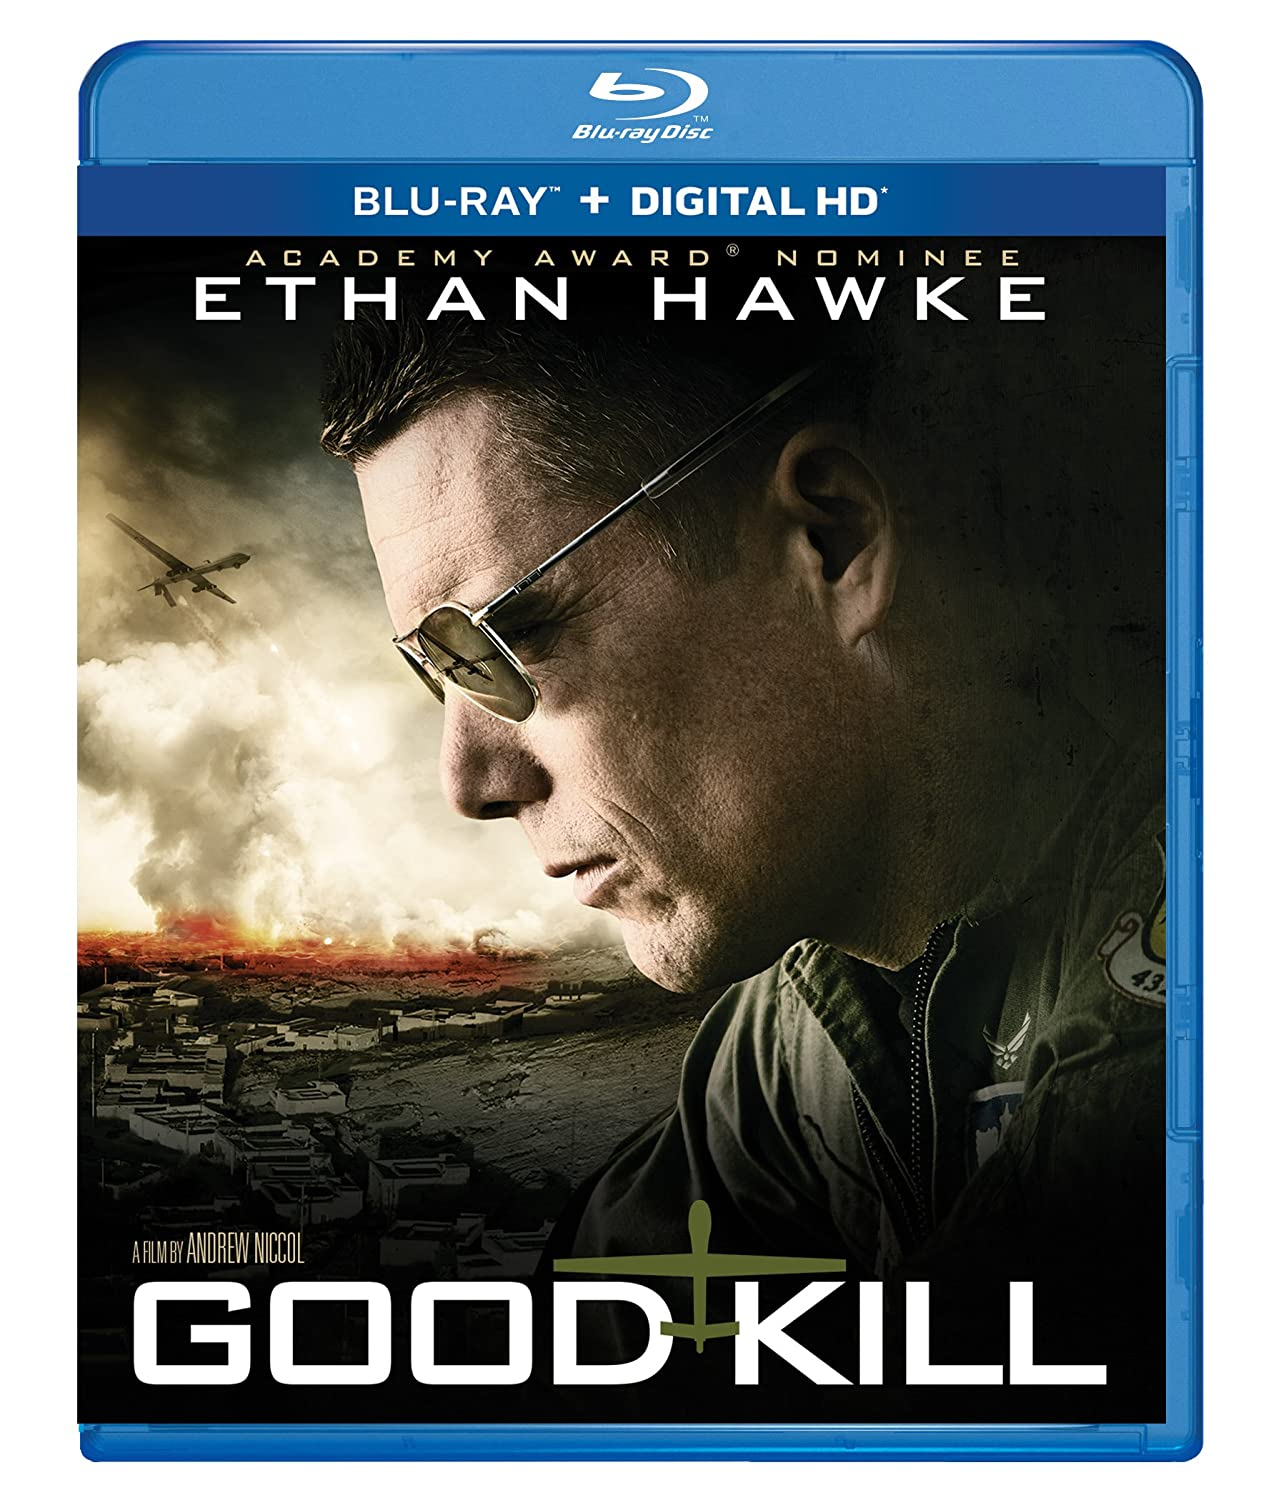 Blu-ray : Good Kill (Widescreen, , AC-3, Digital Theater System, Sensormatic)